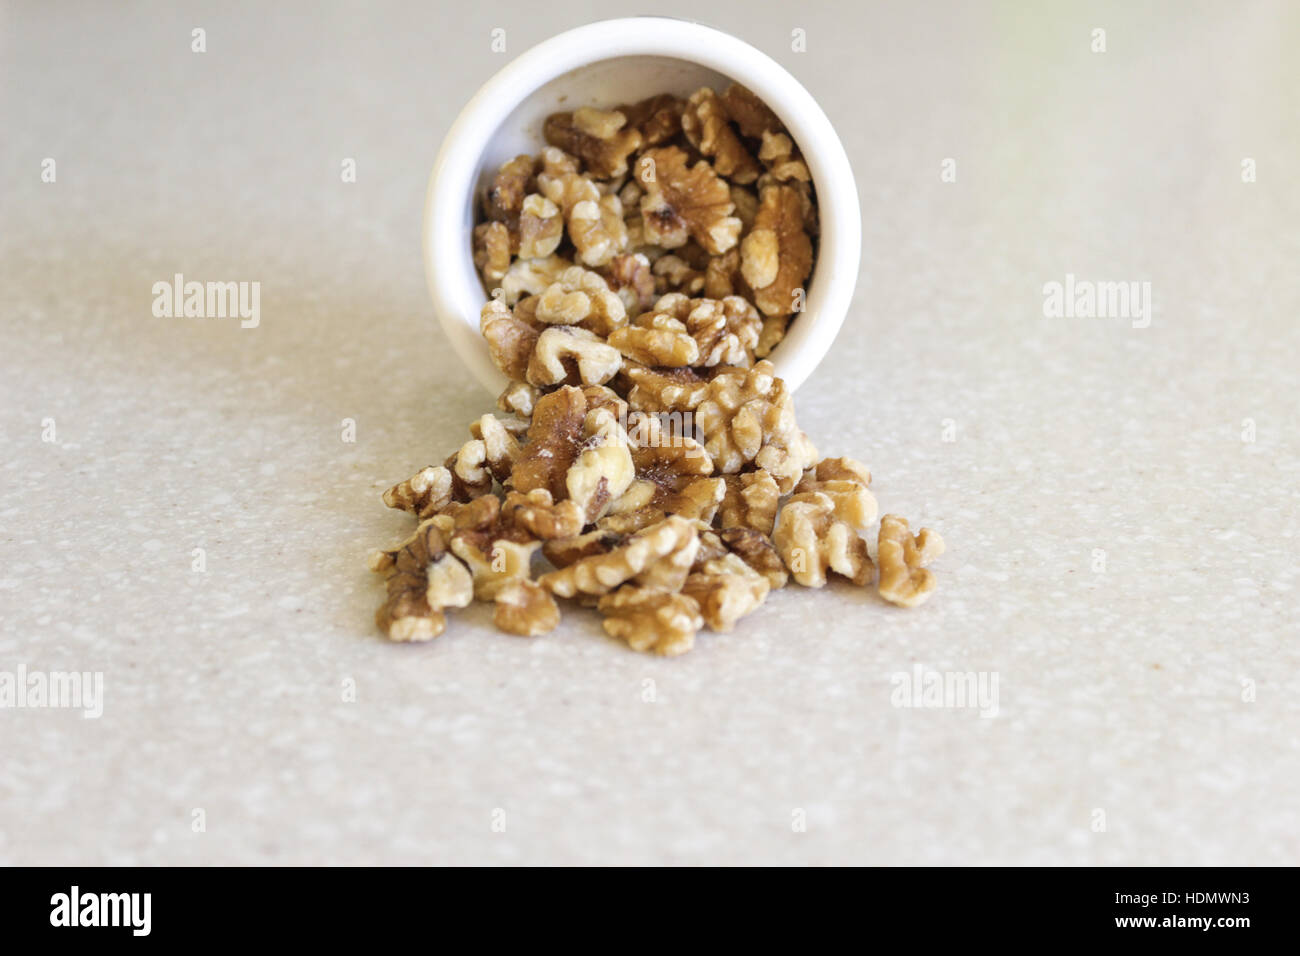 Delicious walnuts spilling out of a container on a kitchen countertop, ready to enjoy as a snack or in a favorite Stock Photo